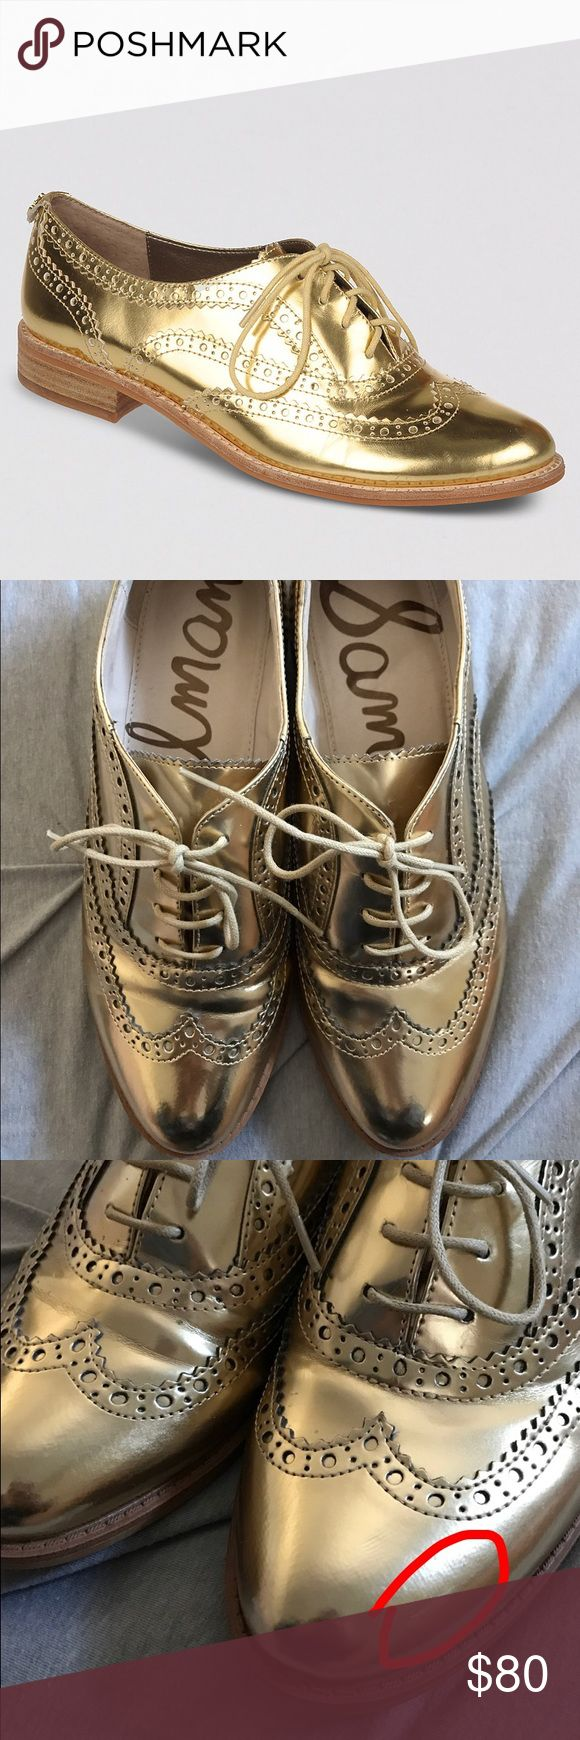 "Sam Edelman Jerome Metallic Gold Oxfords Add a pop of color and shine to any outfit! Fab gold metallic wingtip oxfords with a 1"" stacked faux wood heel. Size 9, true to size. Worn once, these show a little wear on top (creasing) and minimal wear on the heels.NO TRADES✅OFFER BUTTON Sam Edelman Shoes Flats & Loafers"